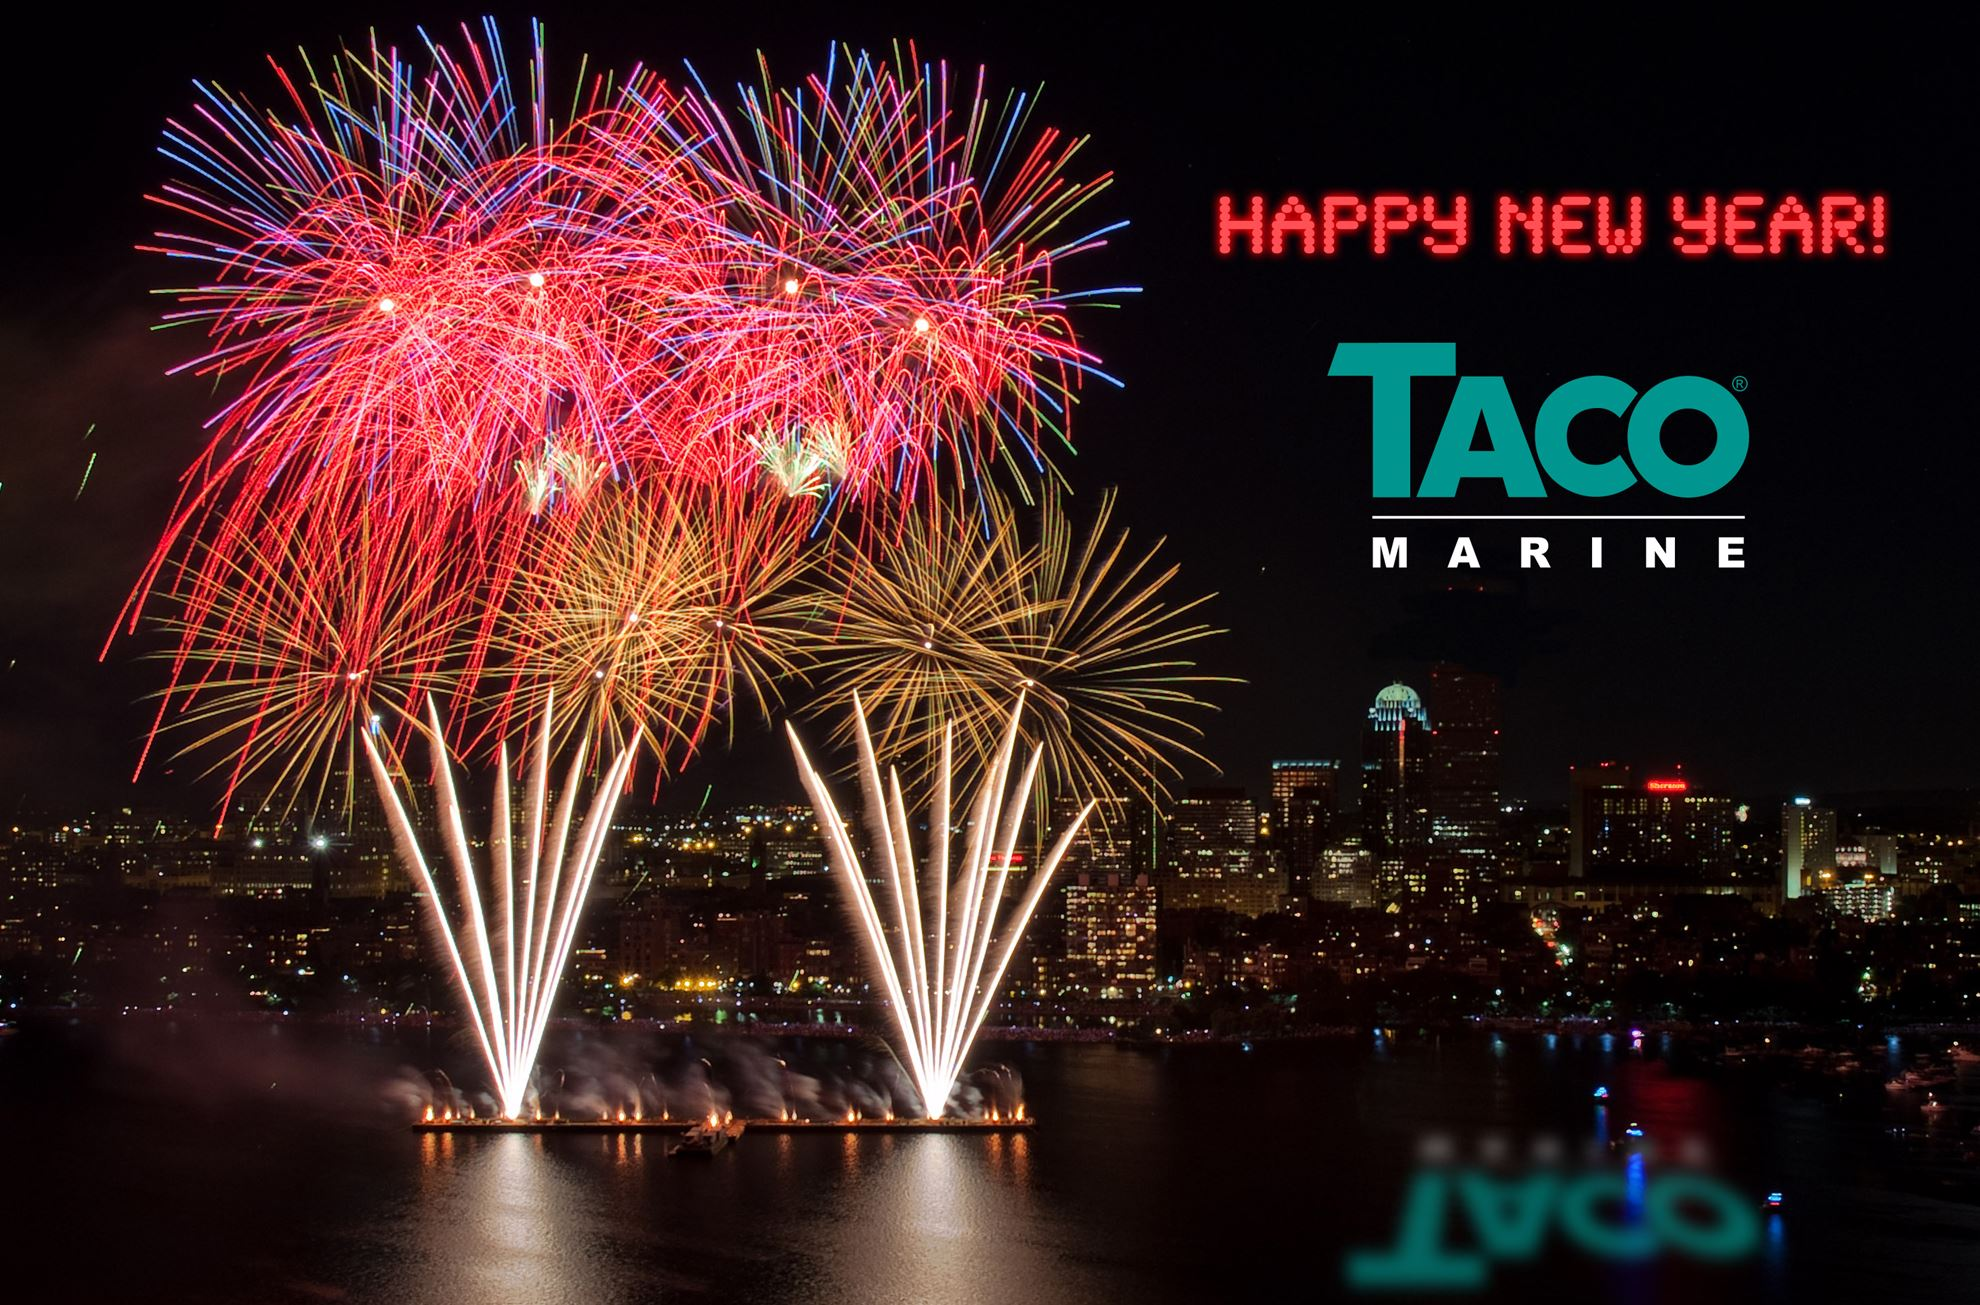 TACO MARINE hopes you learn from yesterday, live for today, hope for tomorrow.